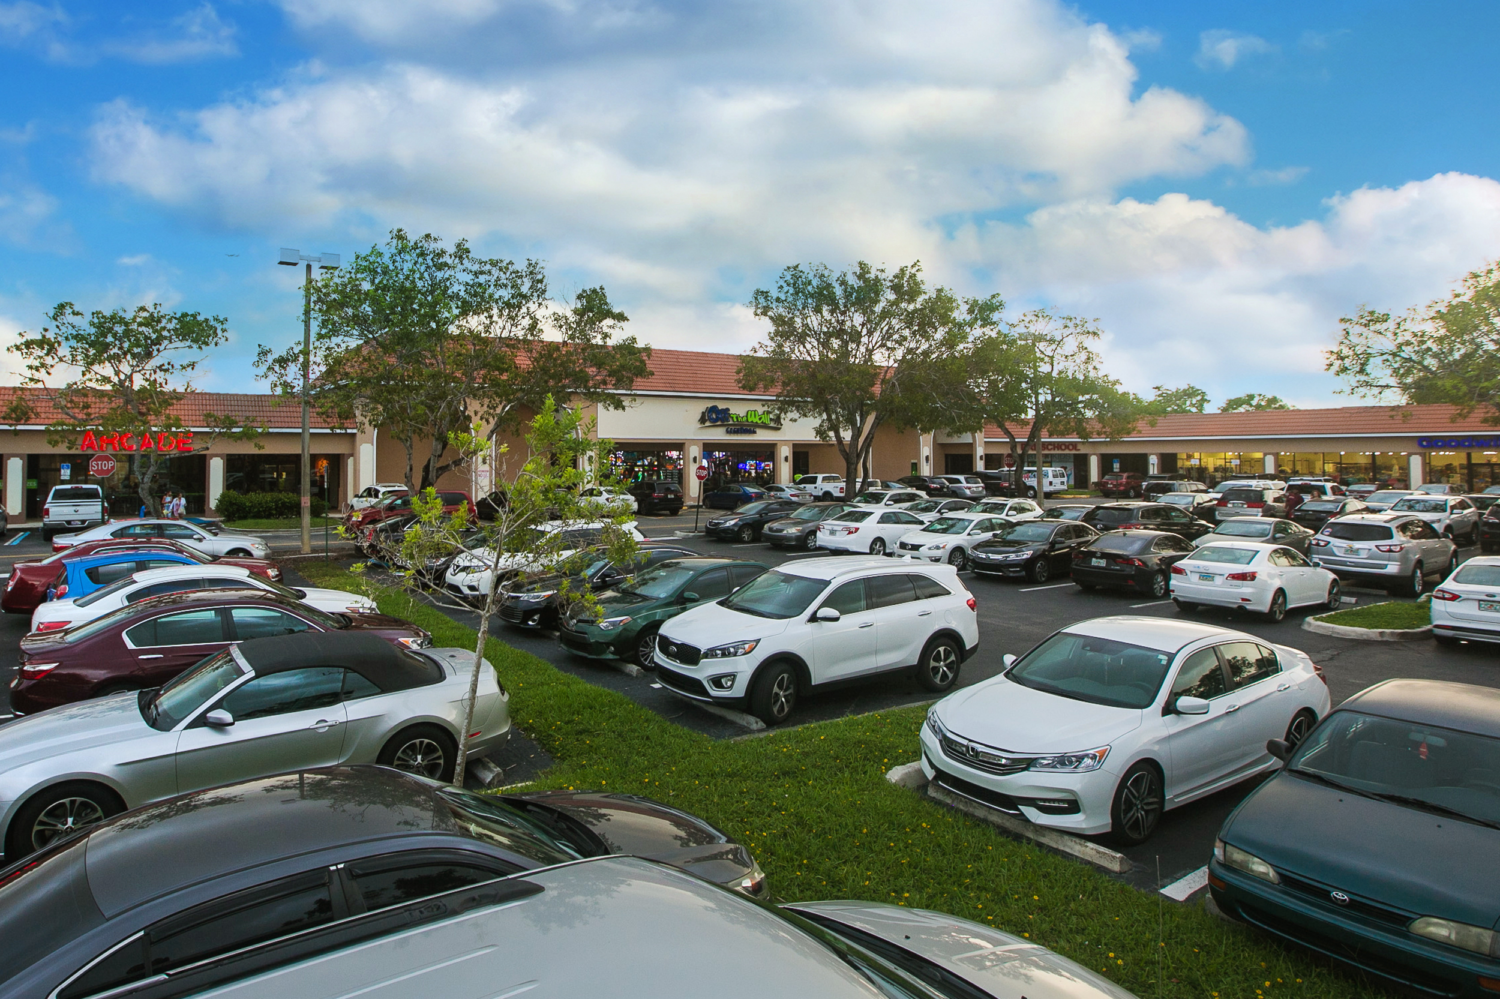 CRC Acquires 155,000 SF Ridge Plaza in Davie, FL for $21.3M -